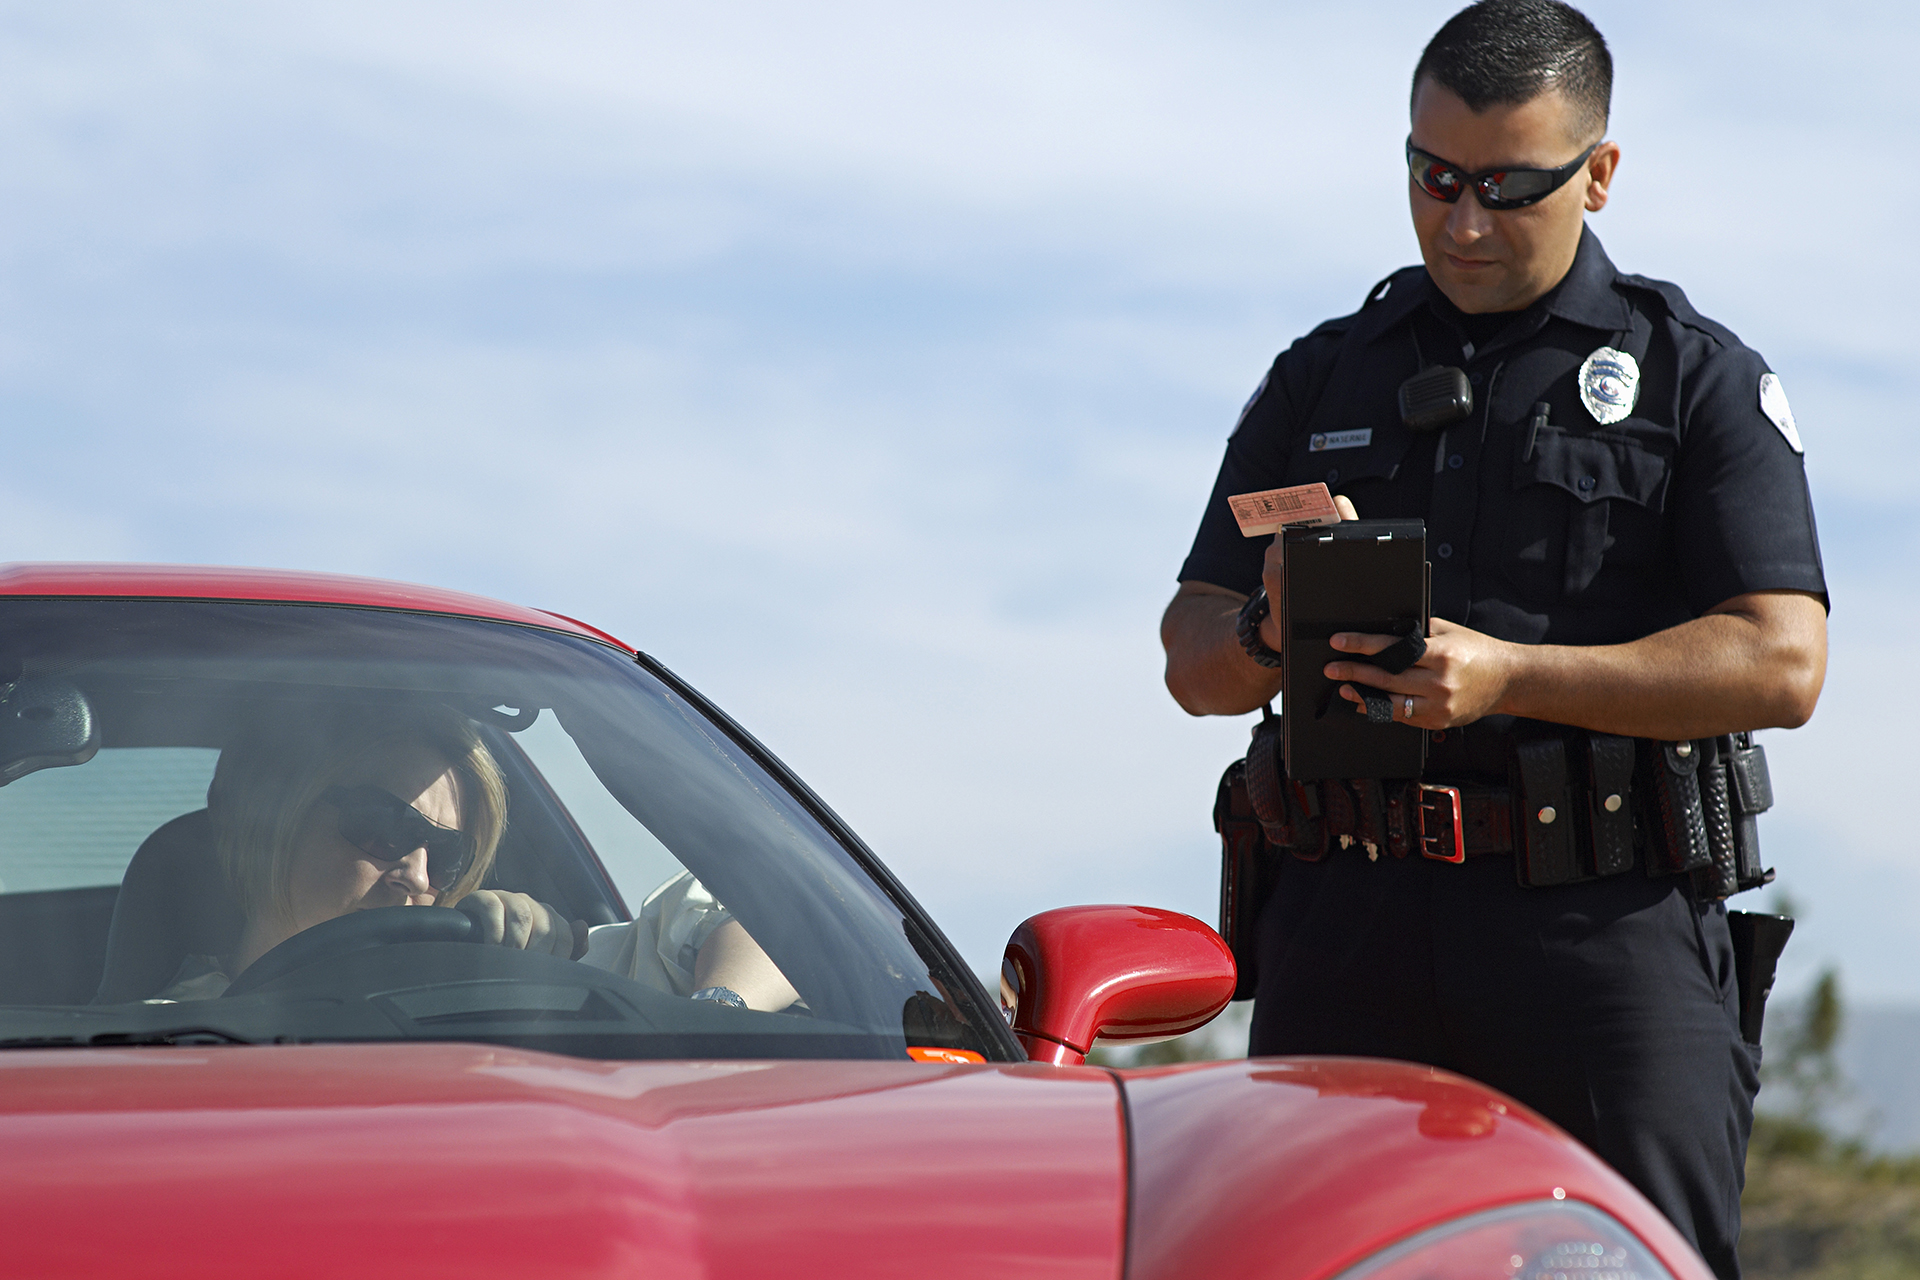 Police Officer Making a Mistake While Issuing Traffic Ticket